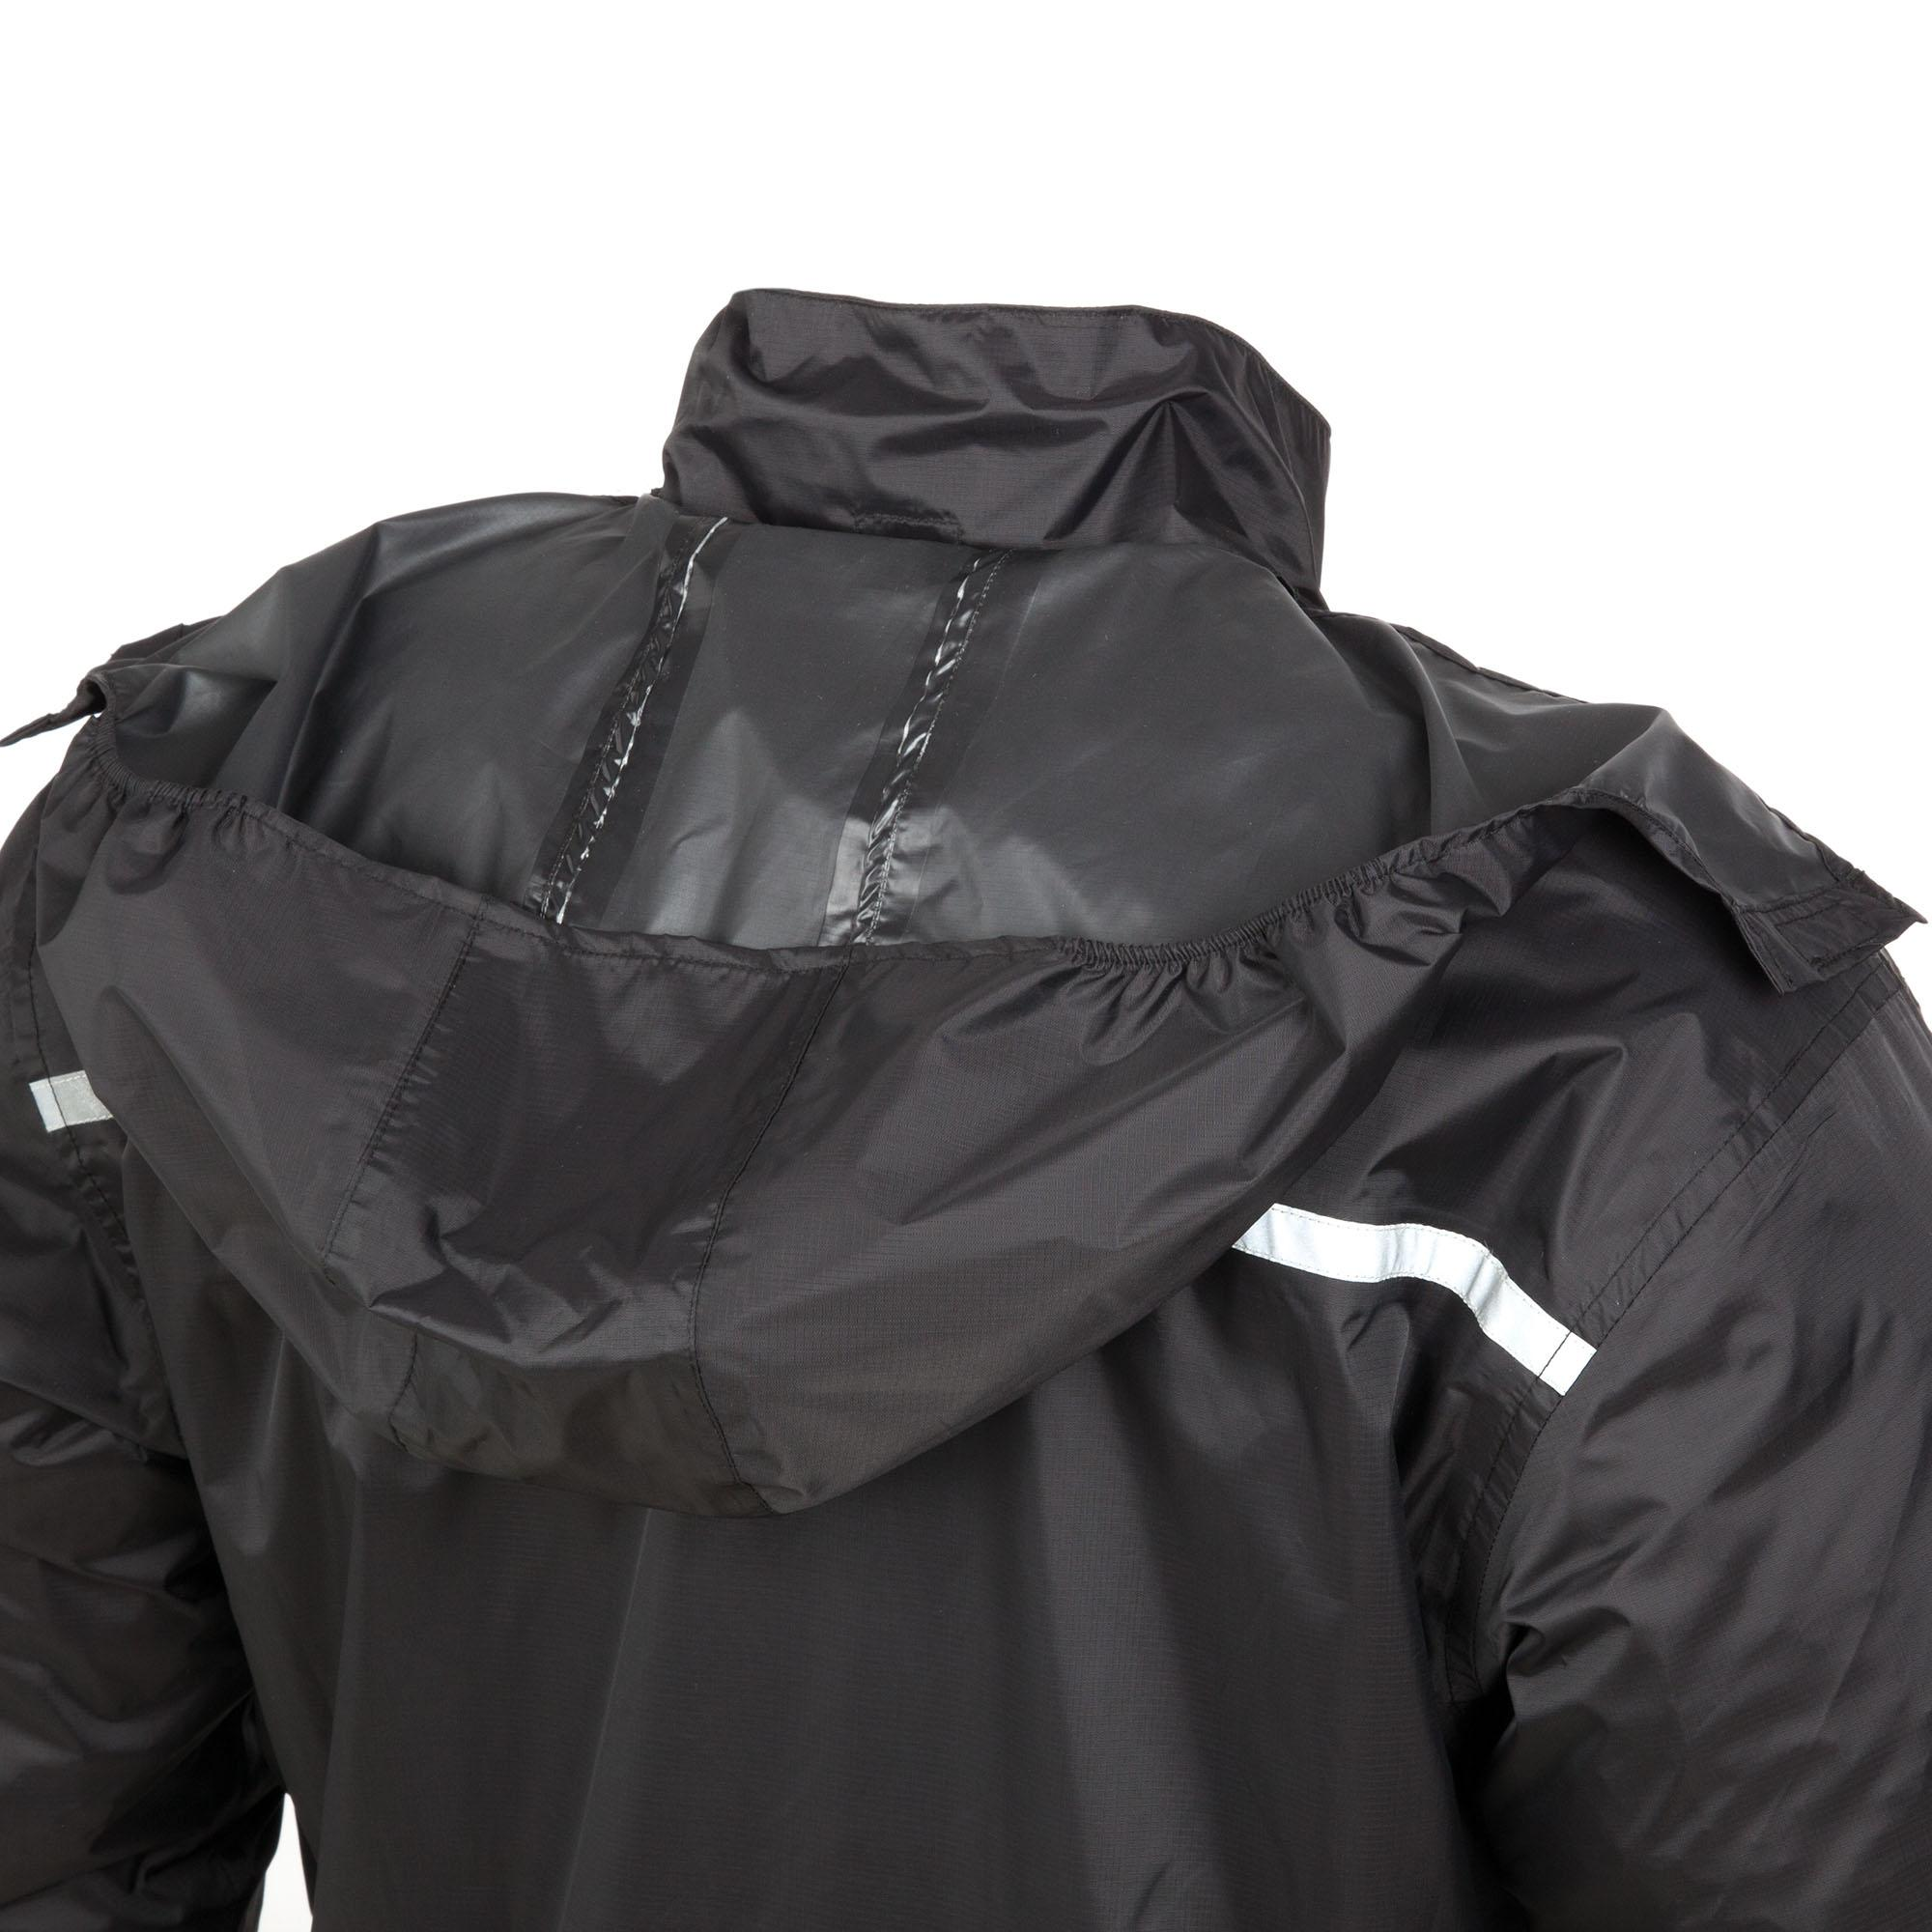 Super–compact Raincoat Nano Rain Jacket Plus Black